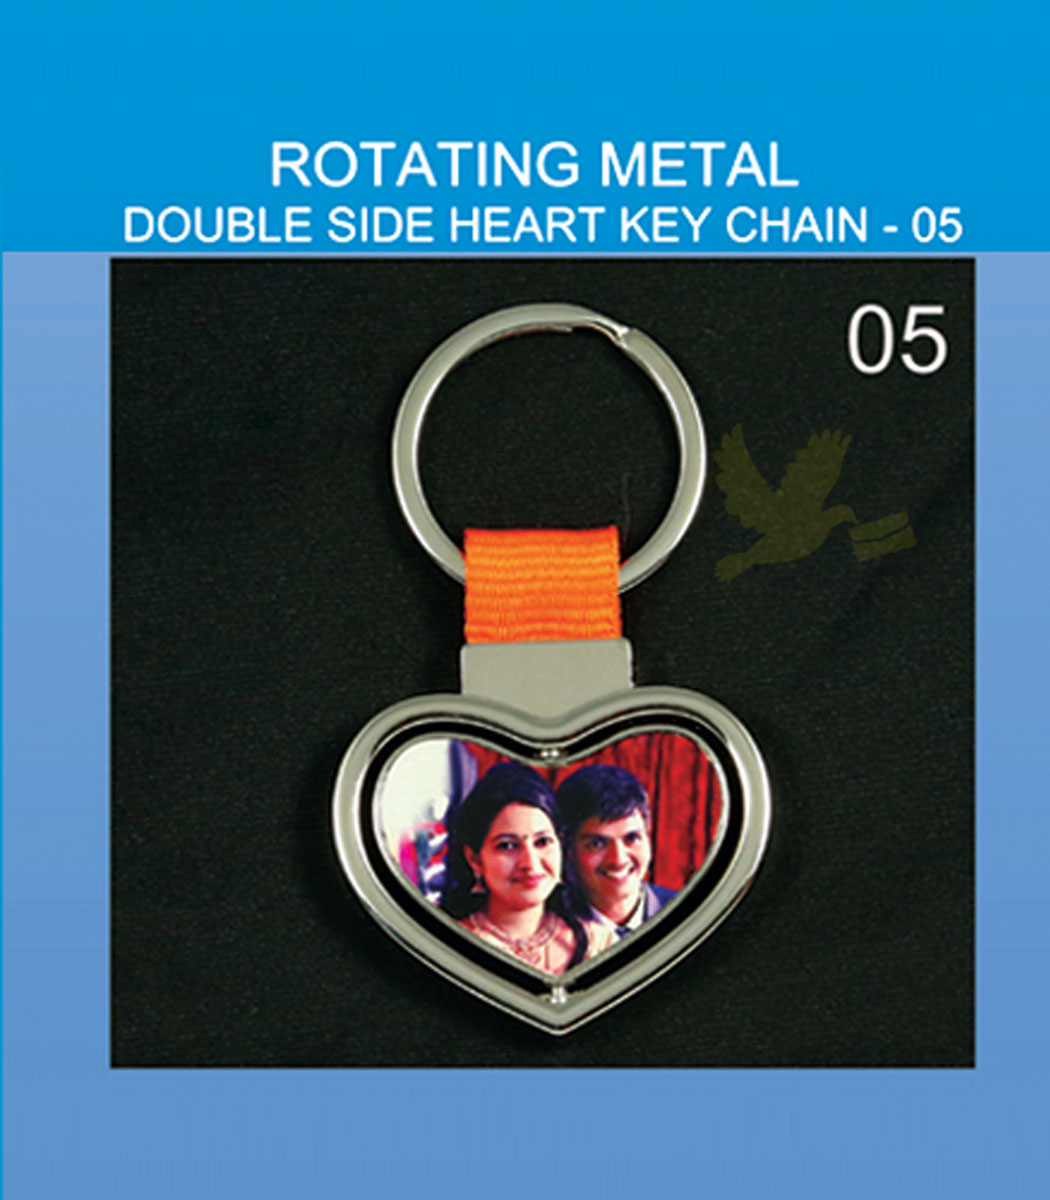 Rotating Metal Double side heart keychains